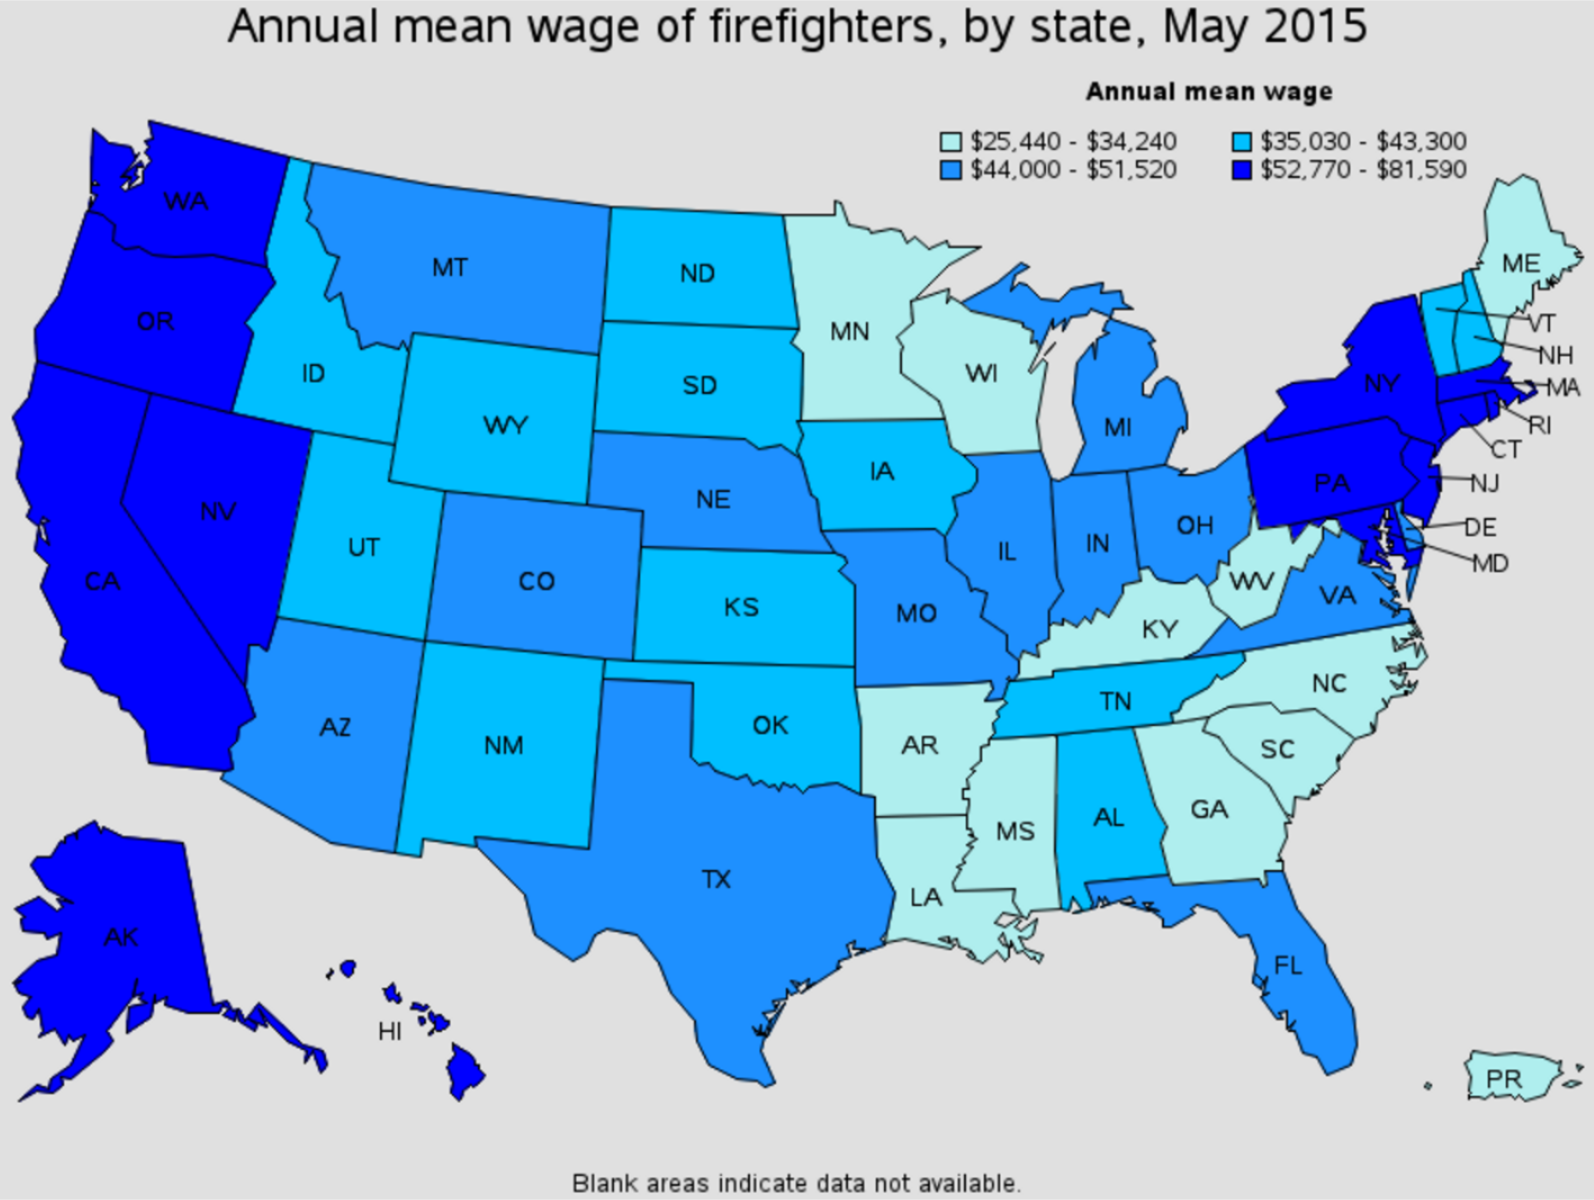 firefighter average salary by state Chicago Heights Illinois